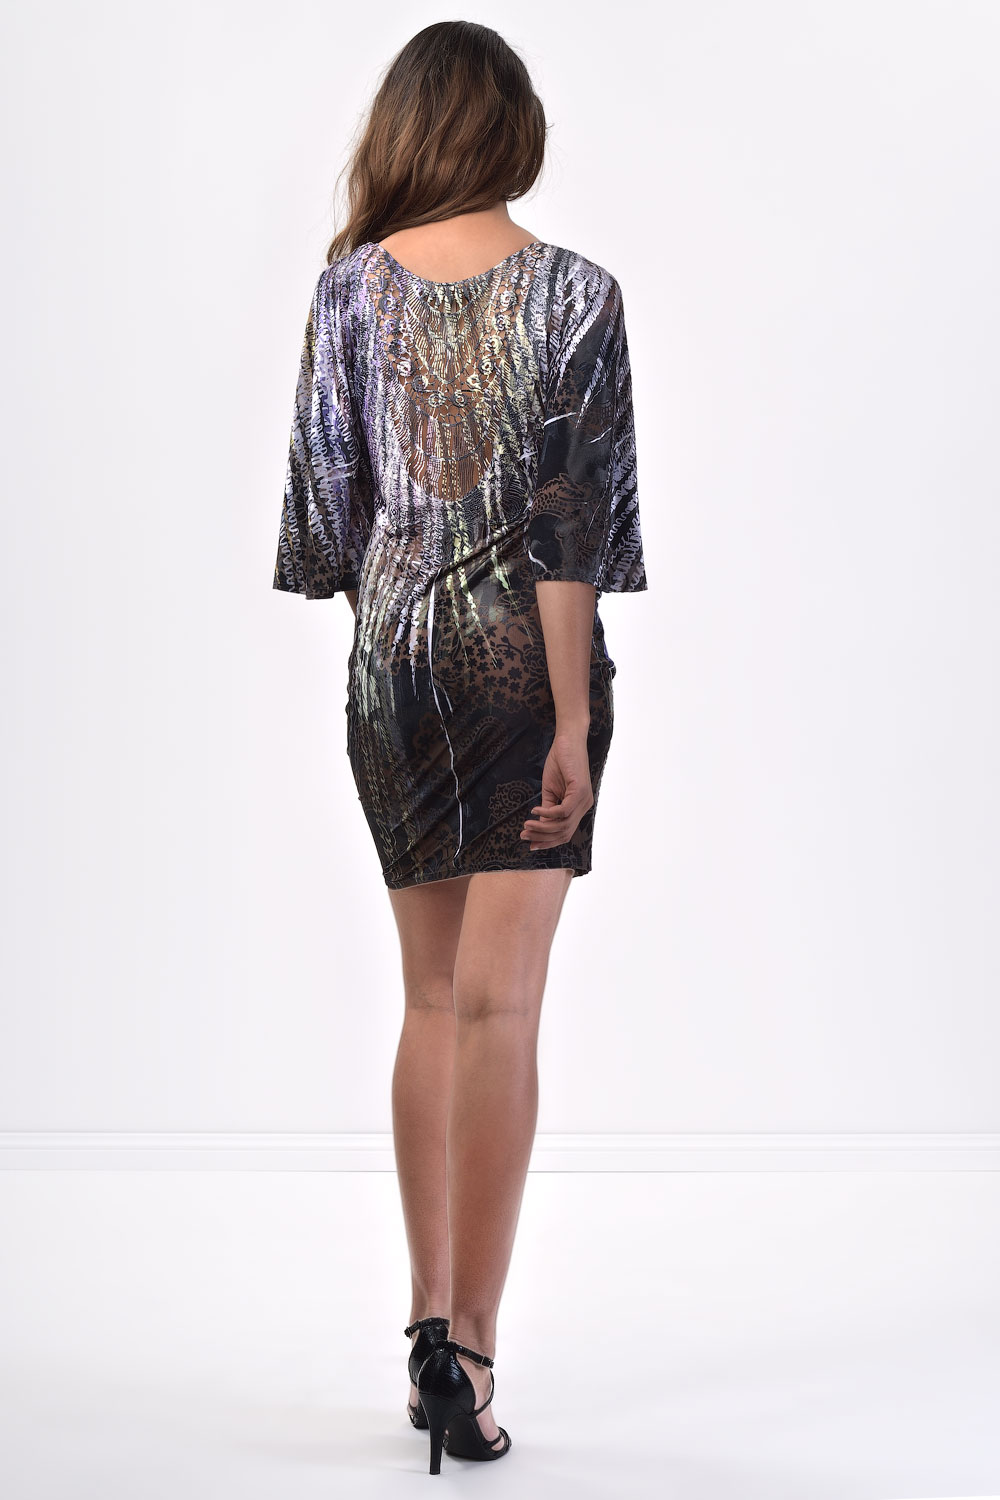 Simply Chic Bat Sleeve Dress With Lace Back